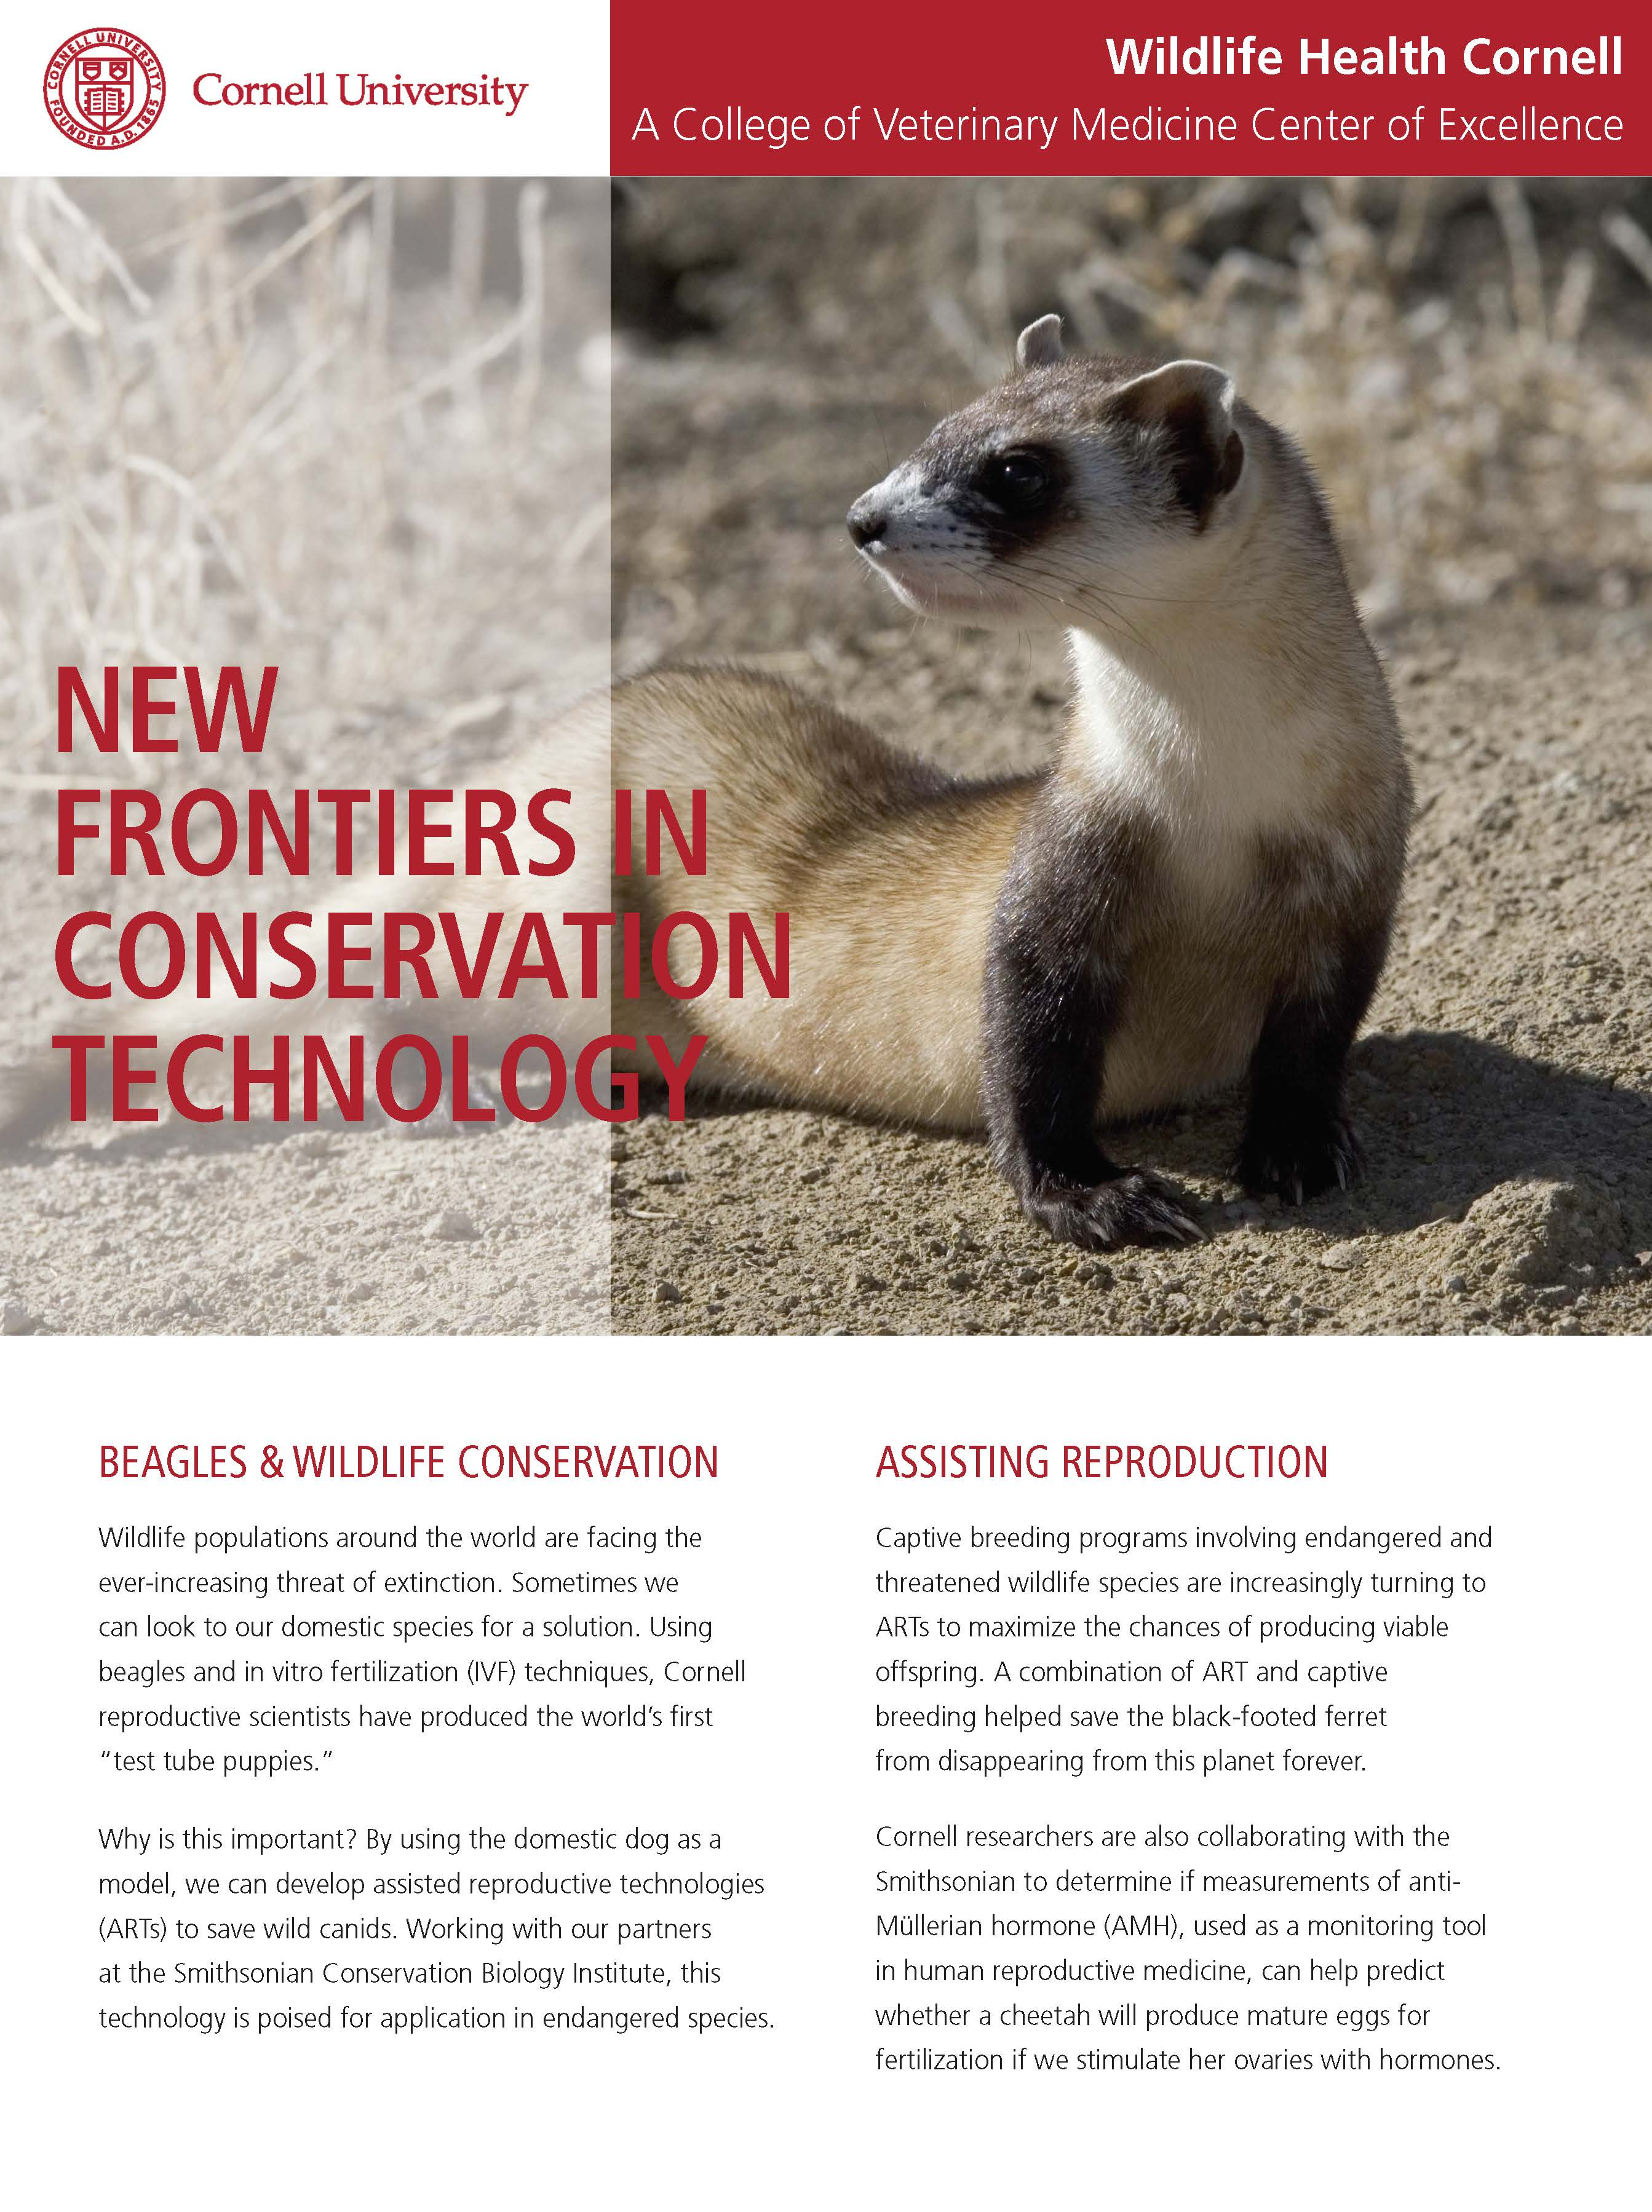 New Frontiers in Conservation Technology article cover